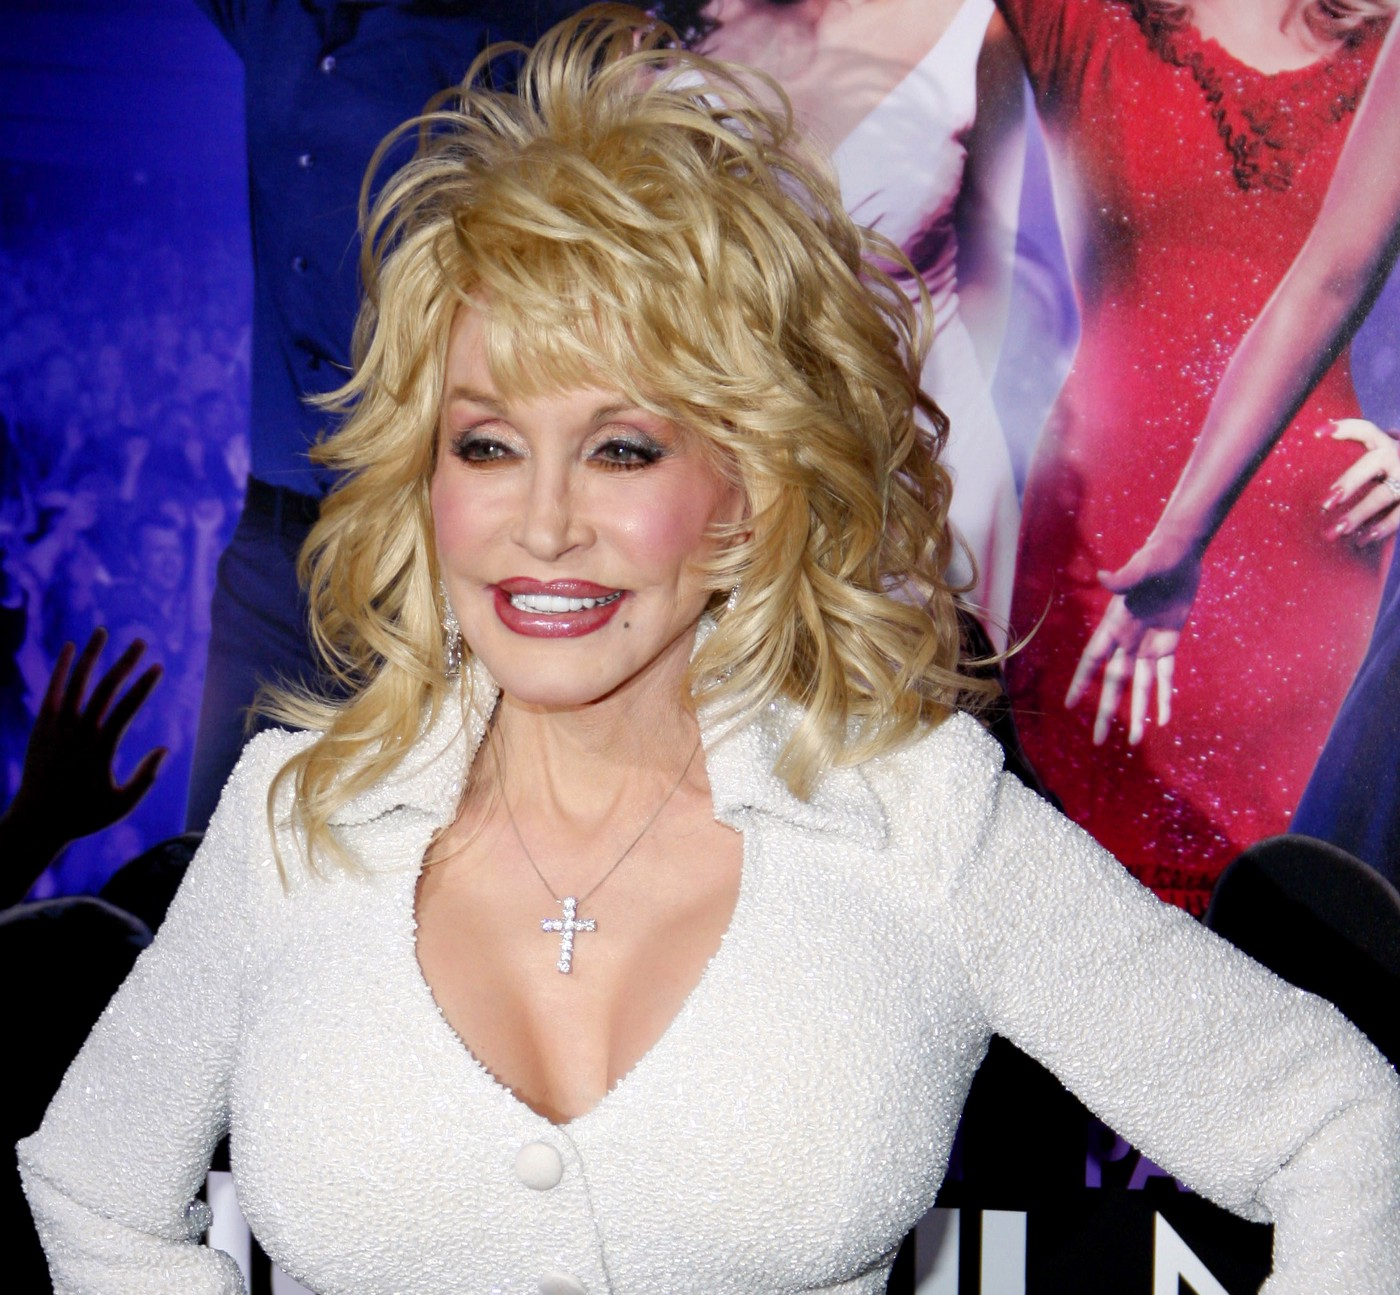 Photo of Dolly Parton: The quickest way to give your child a leg up in a competitive world according to Dolly Parton and Marcus Rashford-photo of Dolly Parton.